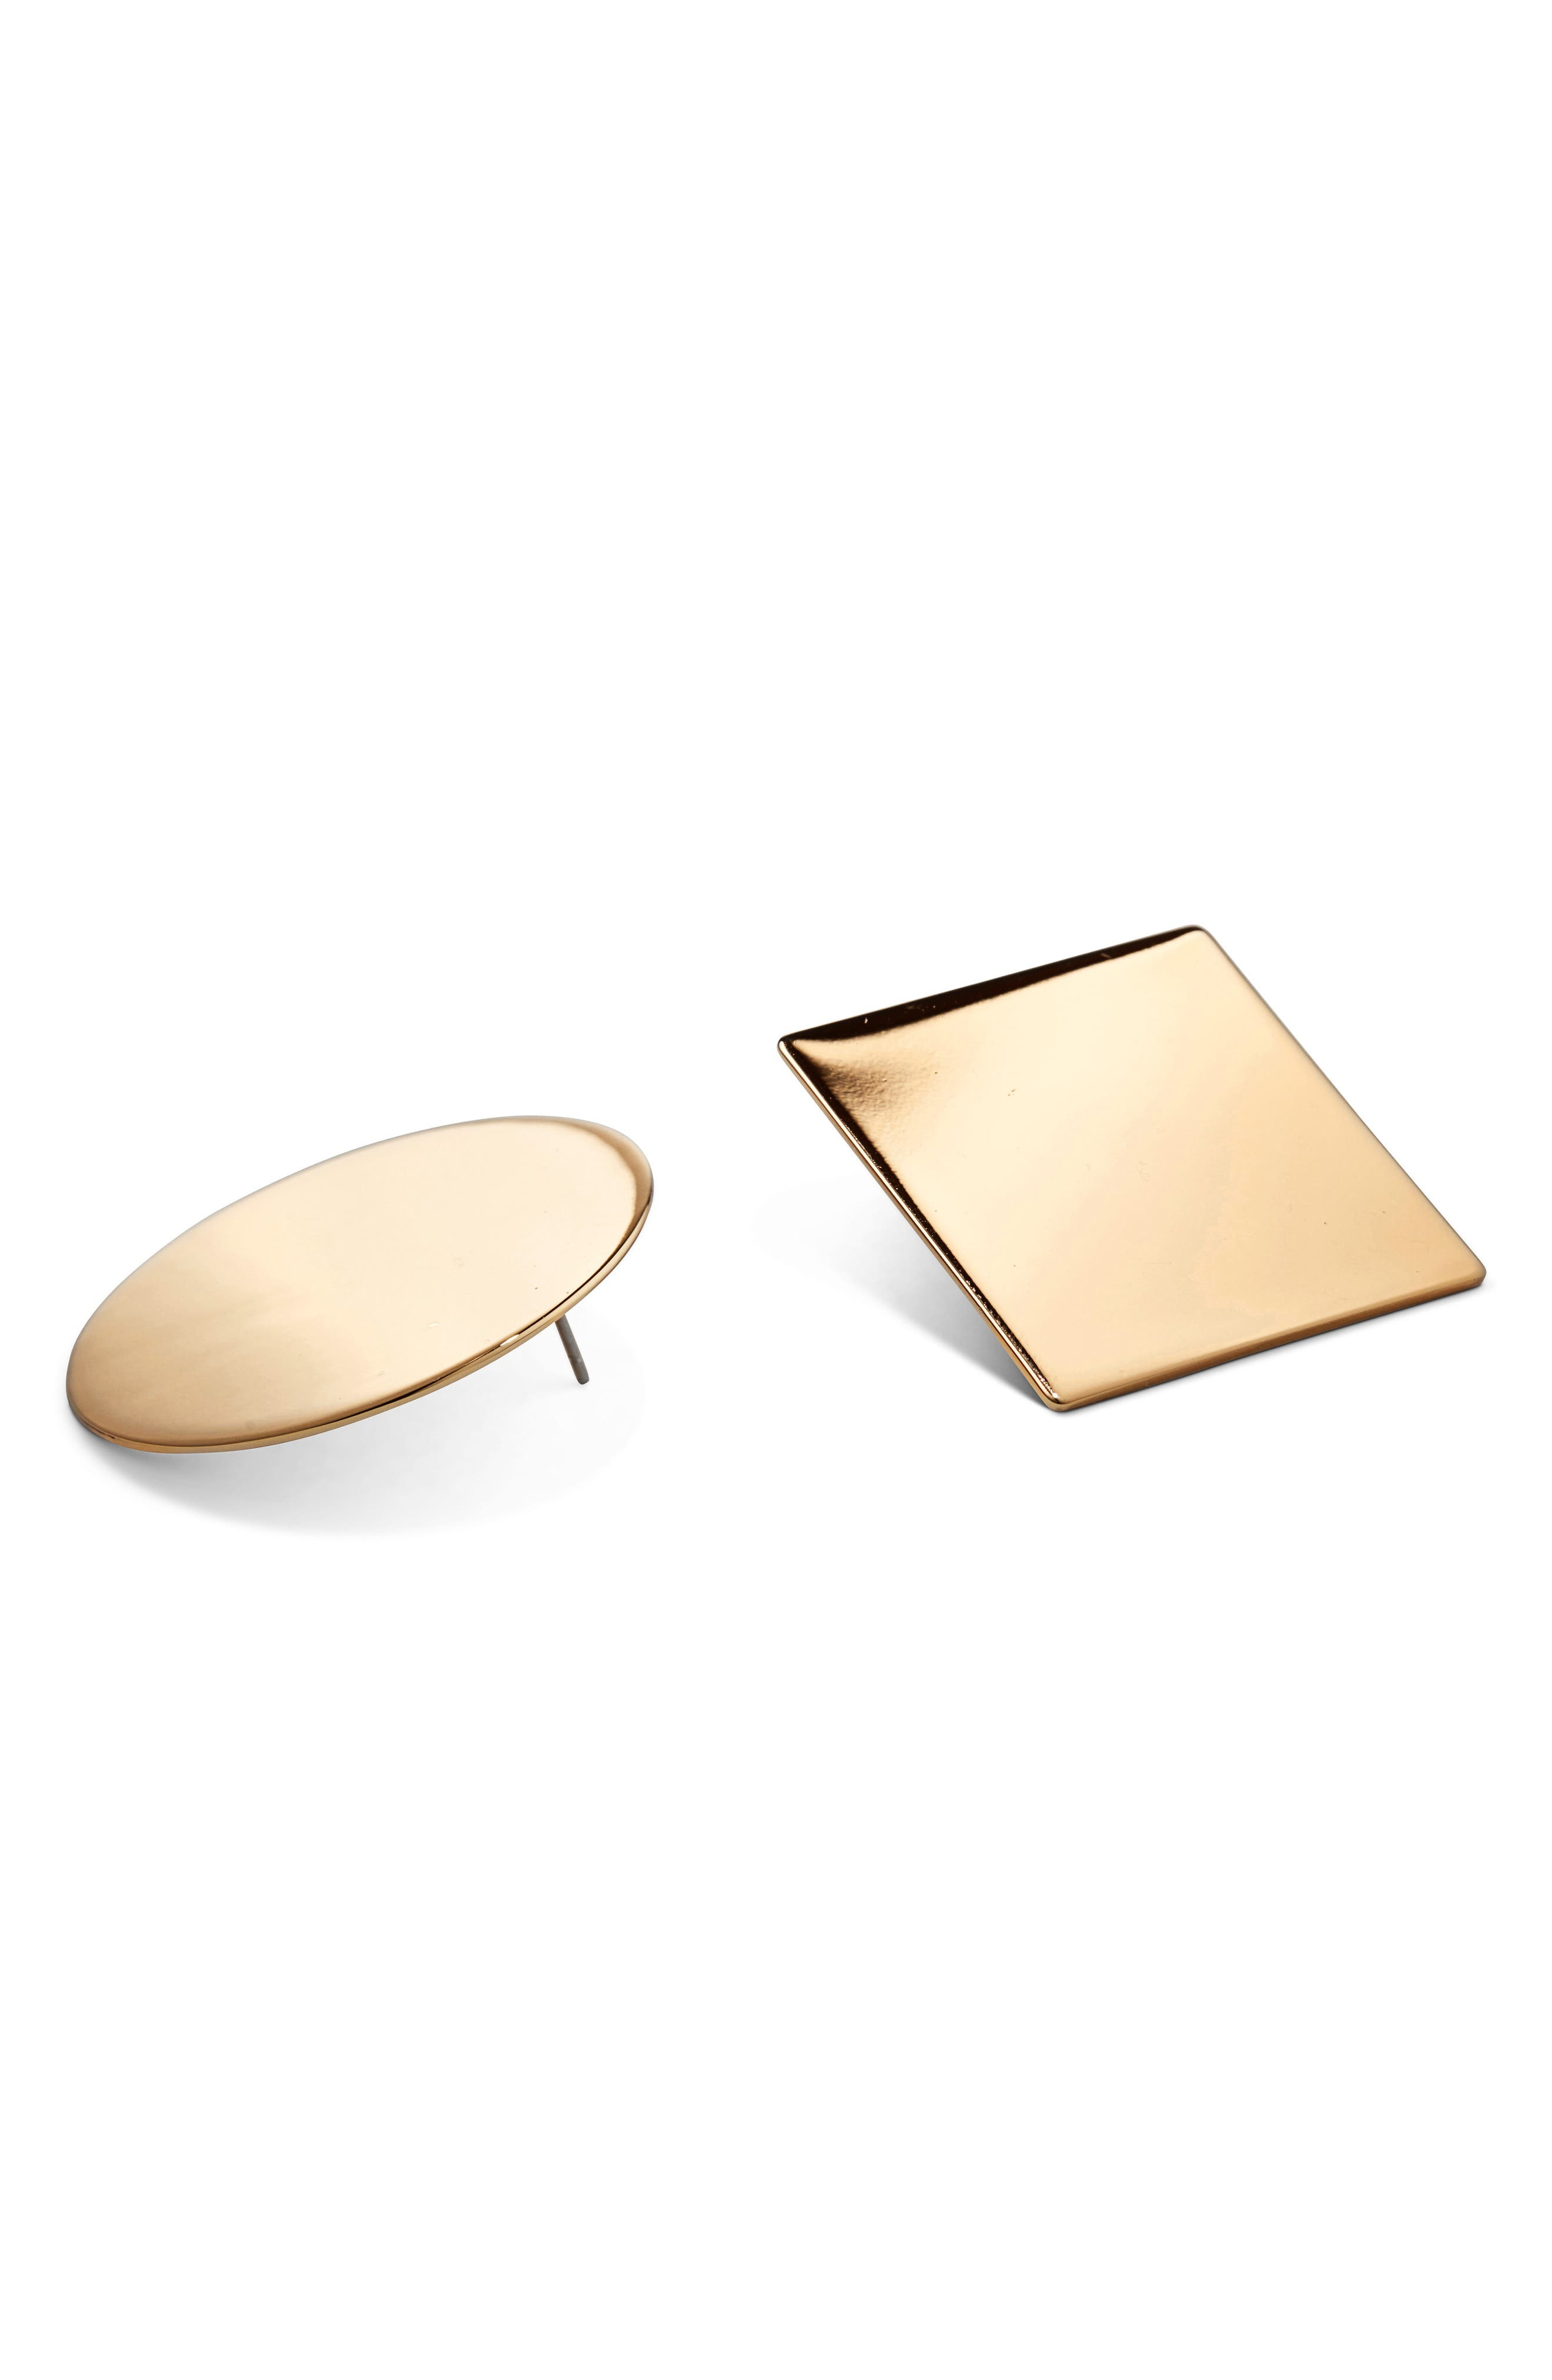 JENNY BIRD The Baysides Mismatch Earrings in Gold